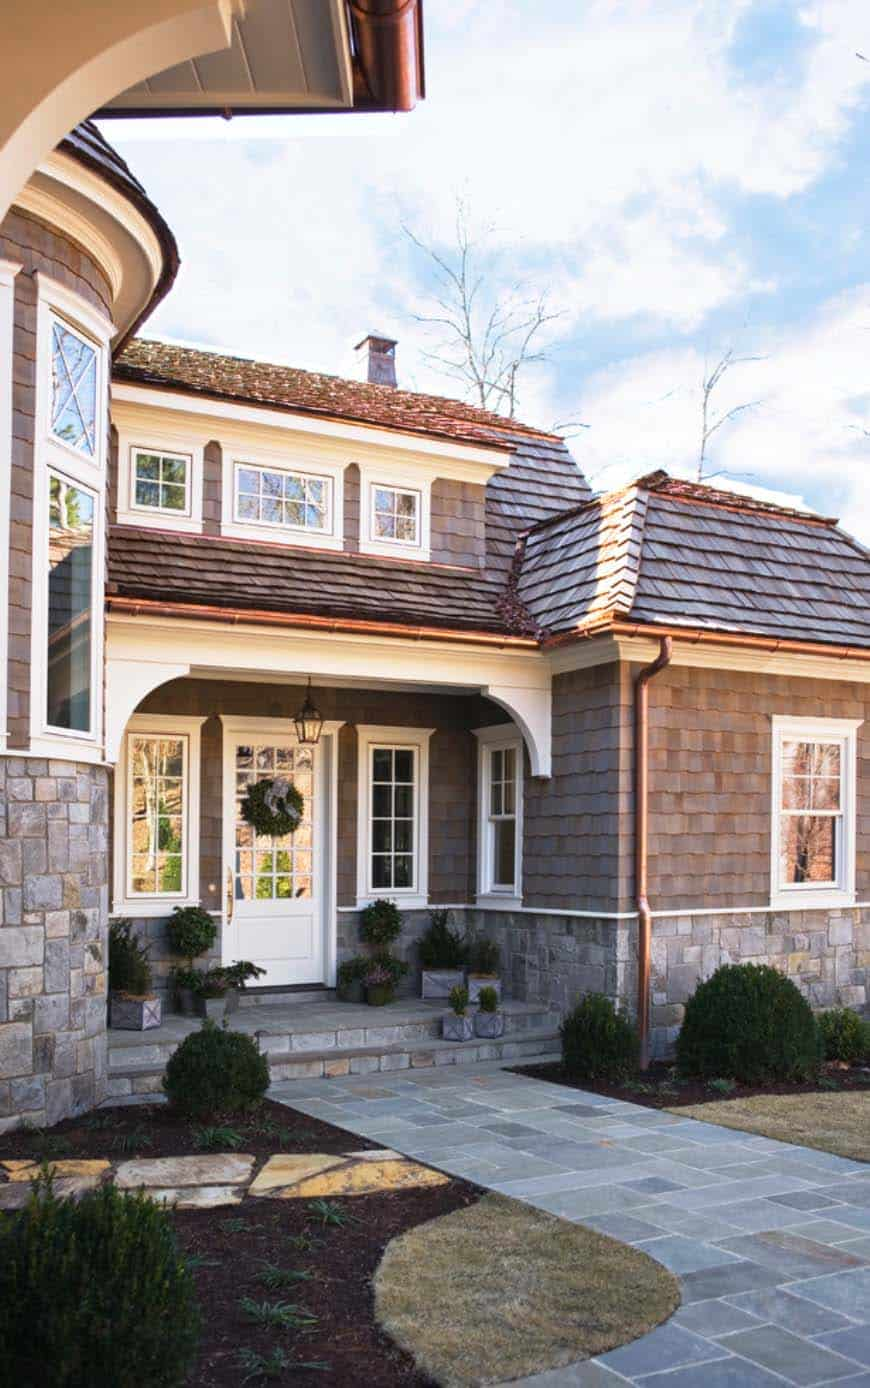 Shingle Style Cottage-Linda McDougald Design-02-1 Kindesign